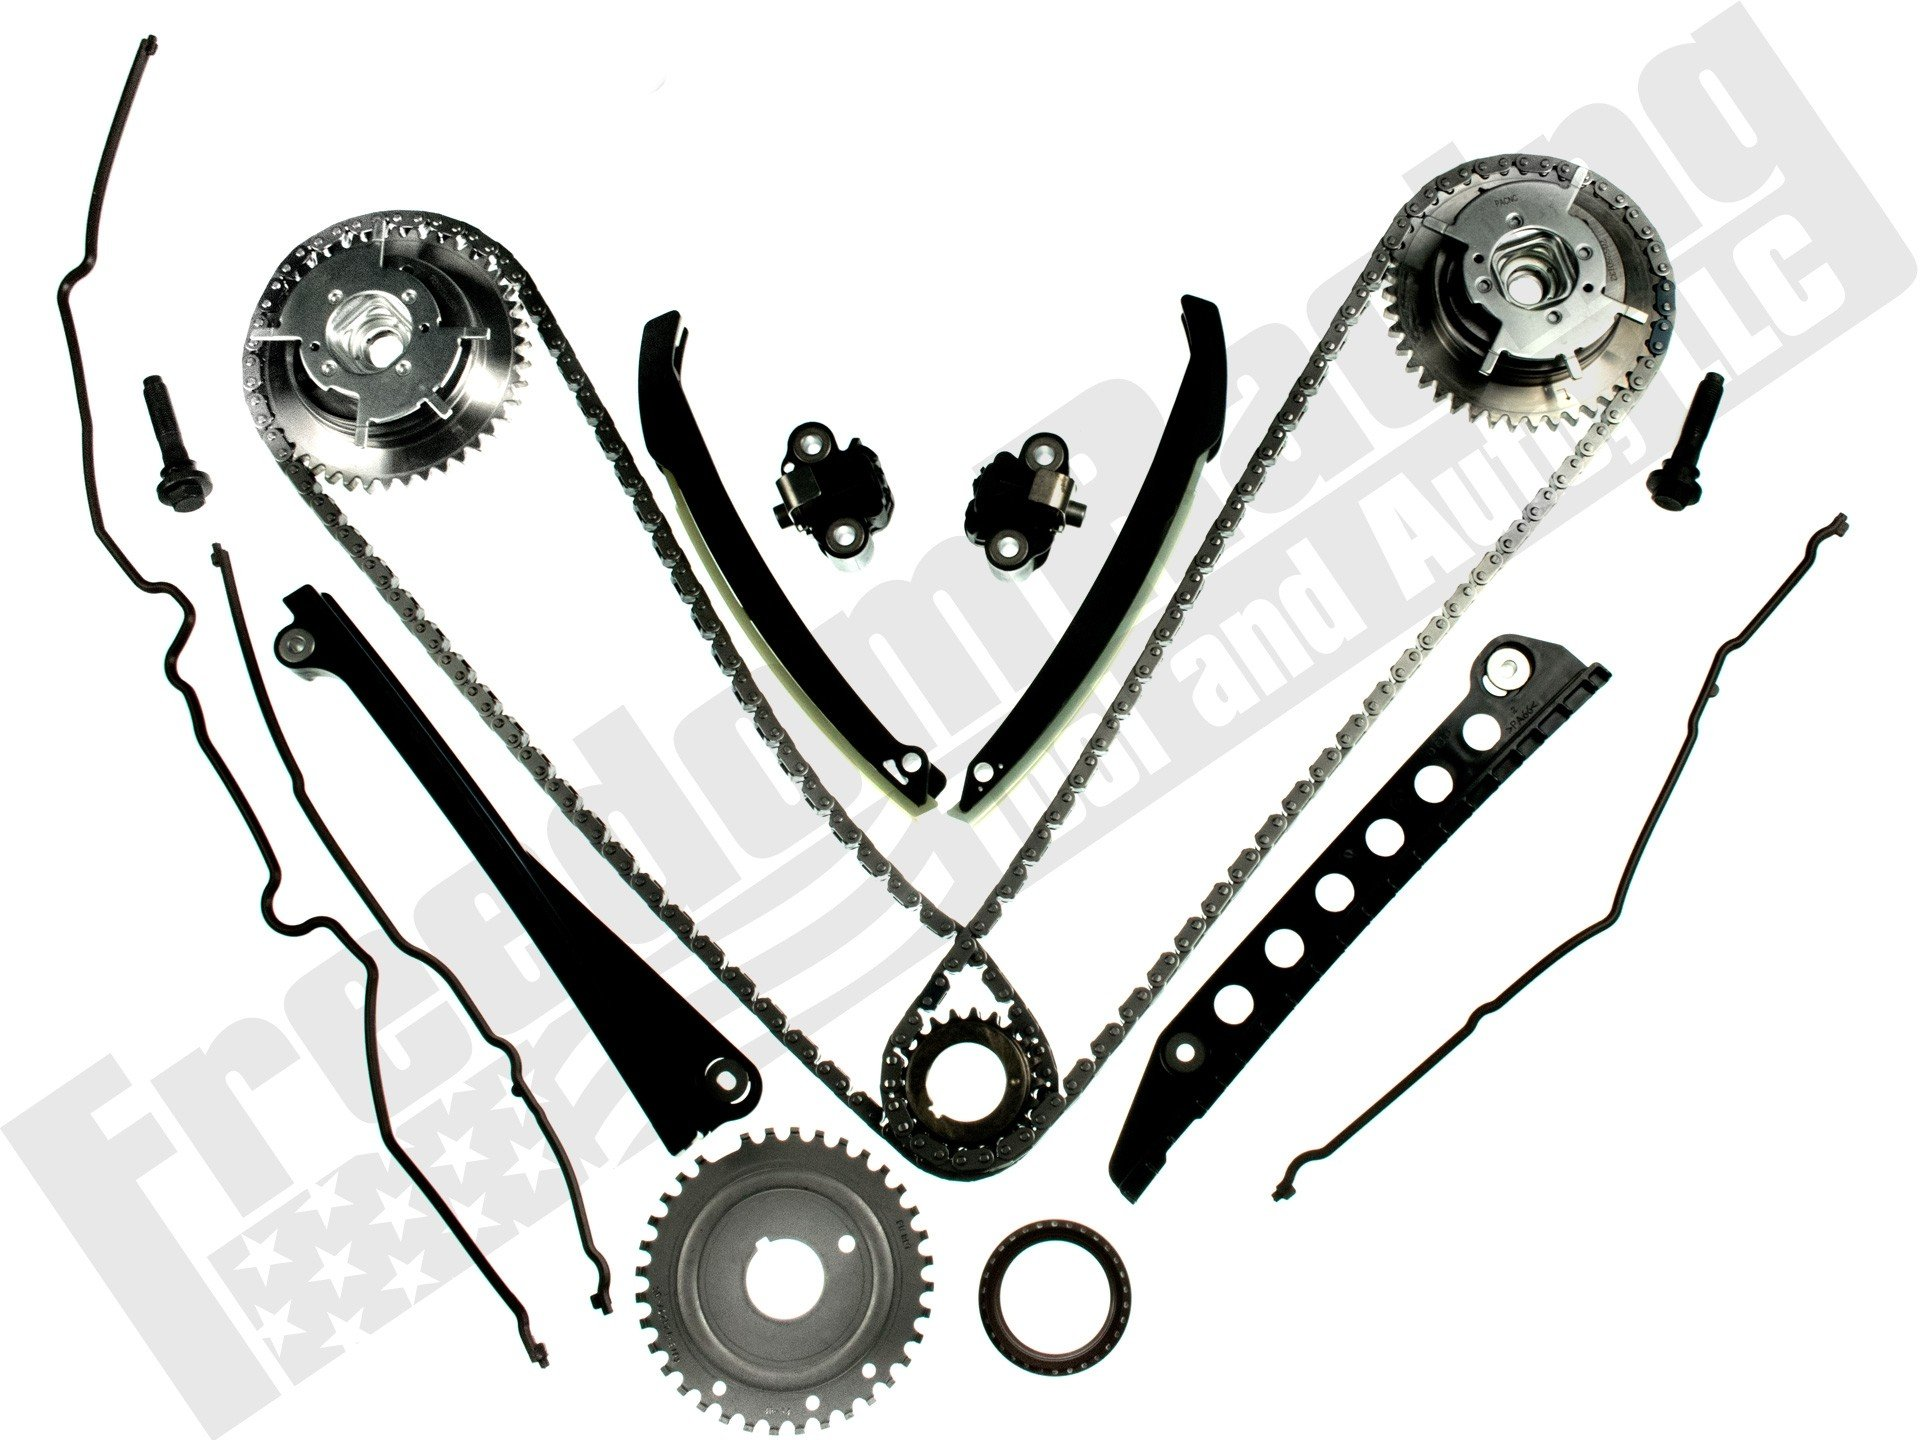 5.4L 3V 2004-2010 Cam Phaser & Timing Chain Replacement